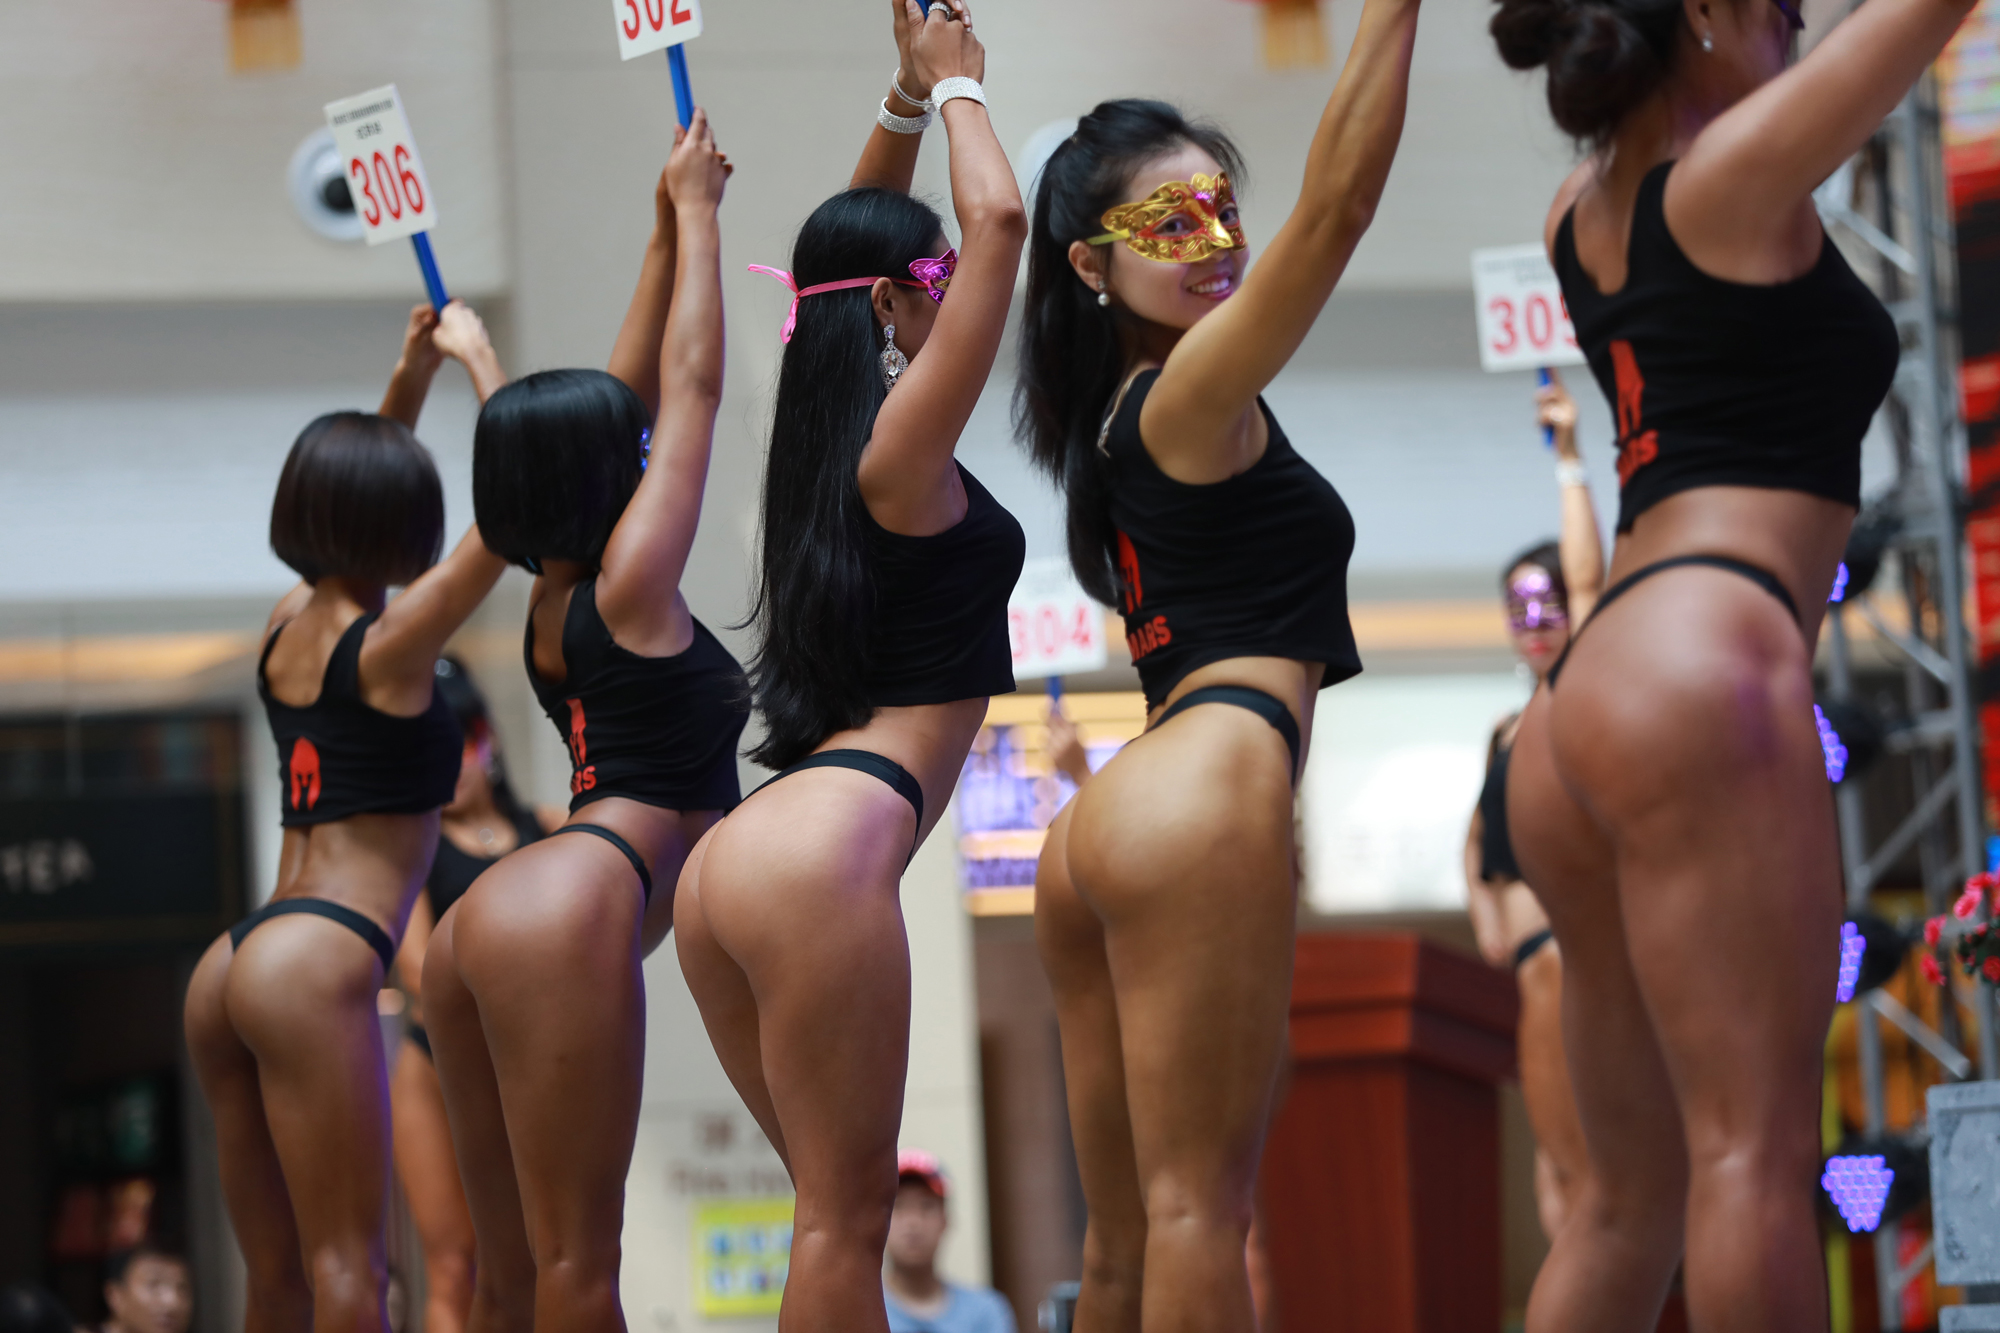 see photos from the women's beautiful butt competition | instyle